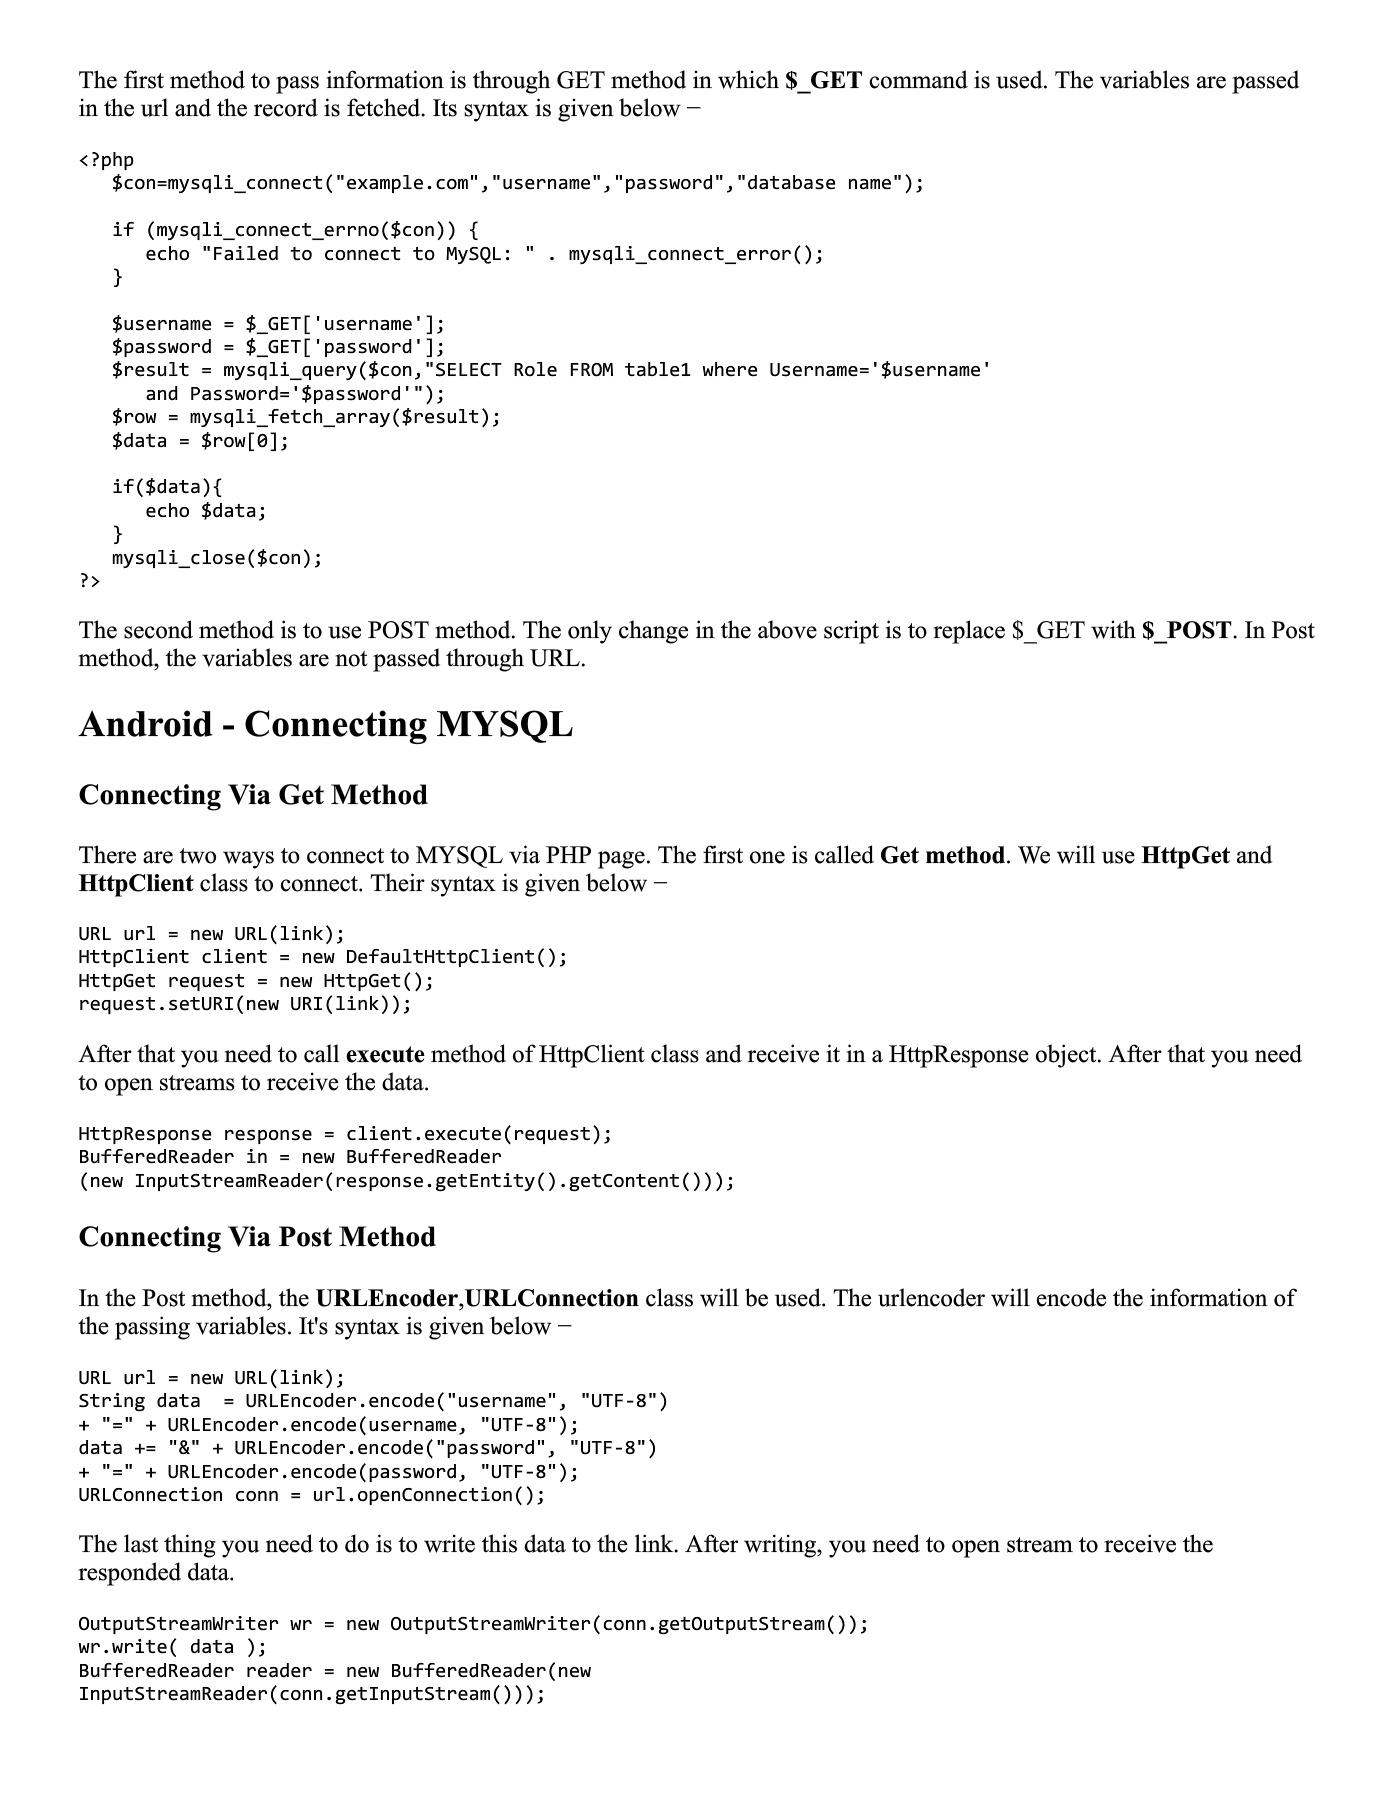 Android PHP_MYSQL Pages 1 - 11 - Text Version   AnyFlip